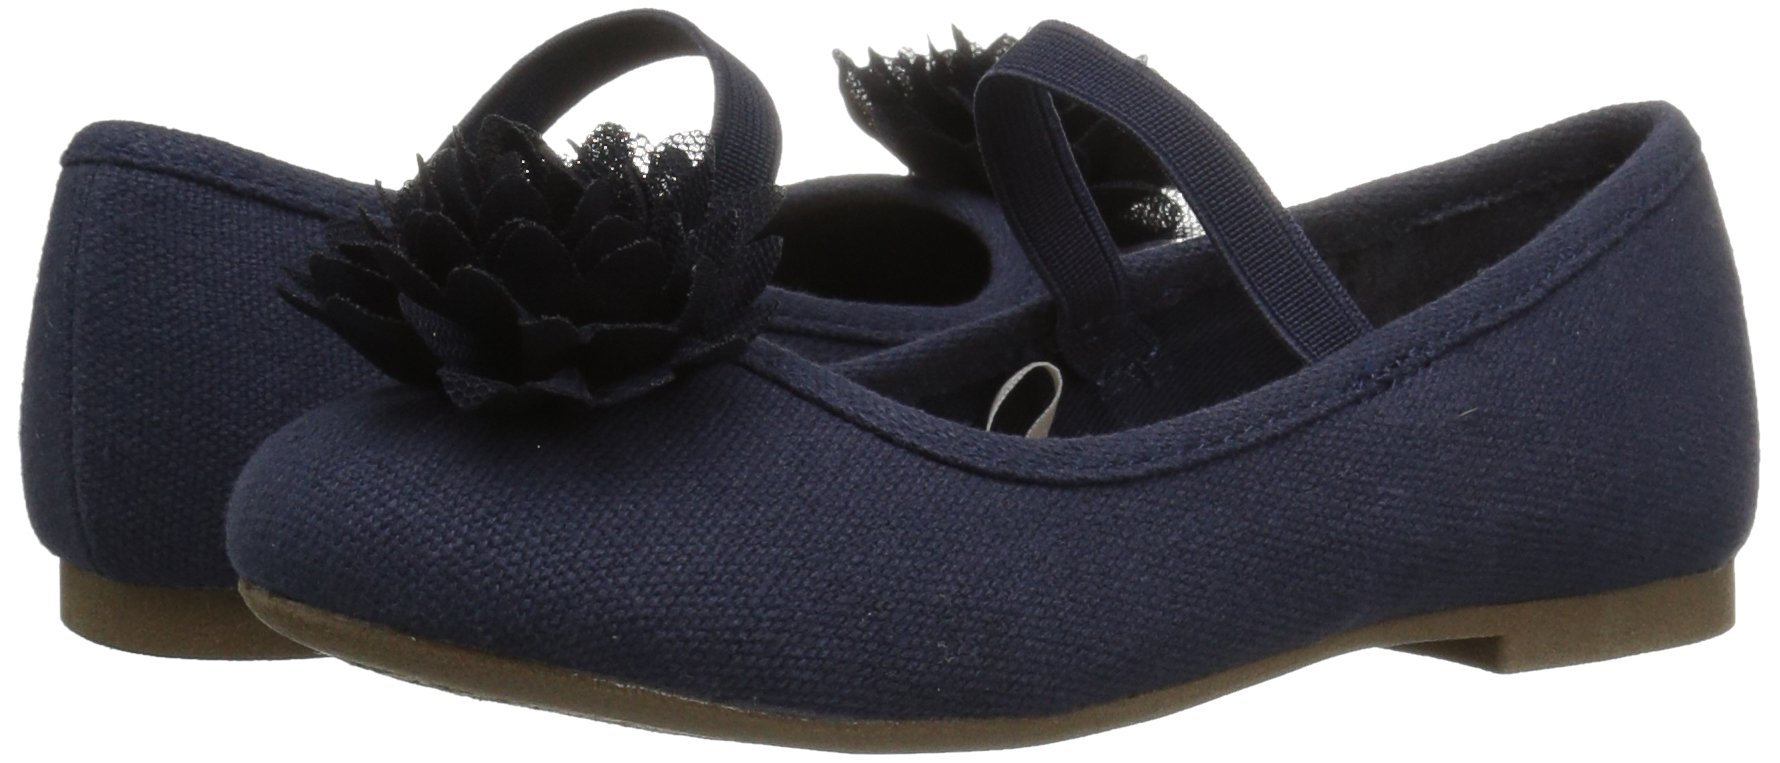 The Children's Place Girls' E TG Uni Kayla Uniform Dress Shoe, Navy, TDDLR 5 Toddler US Toddler by The Children's Place (Image #5)